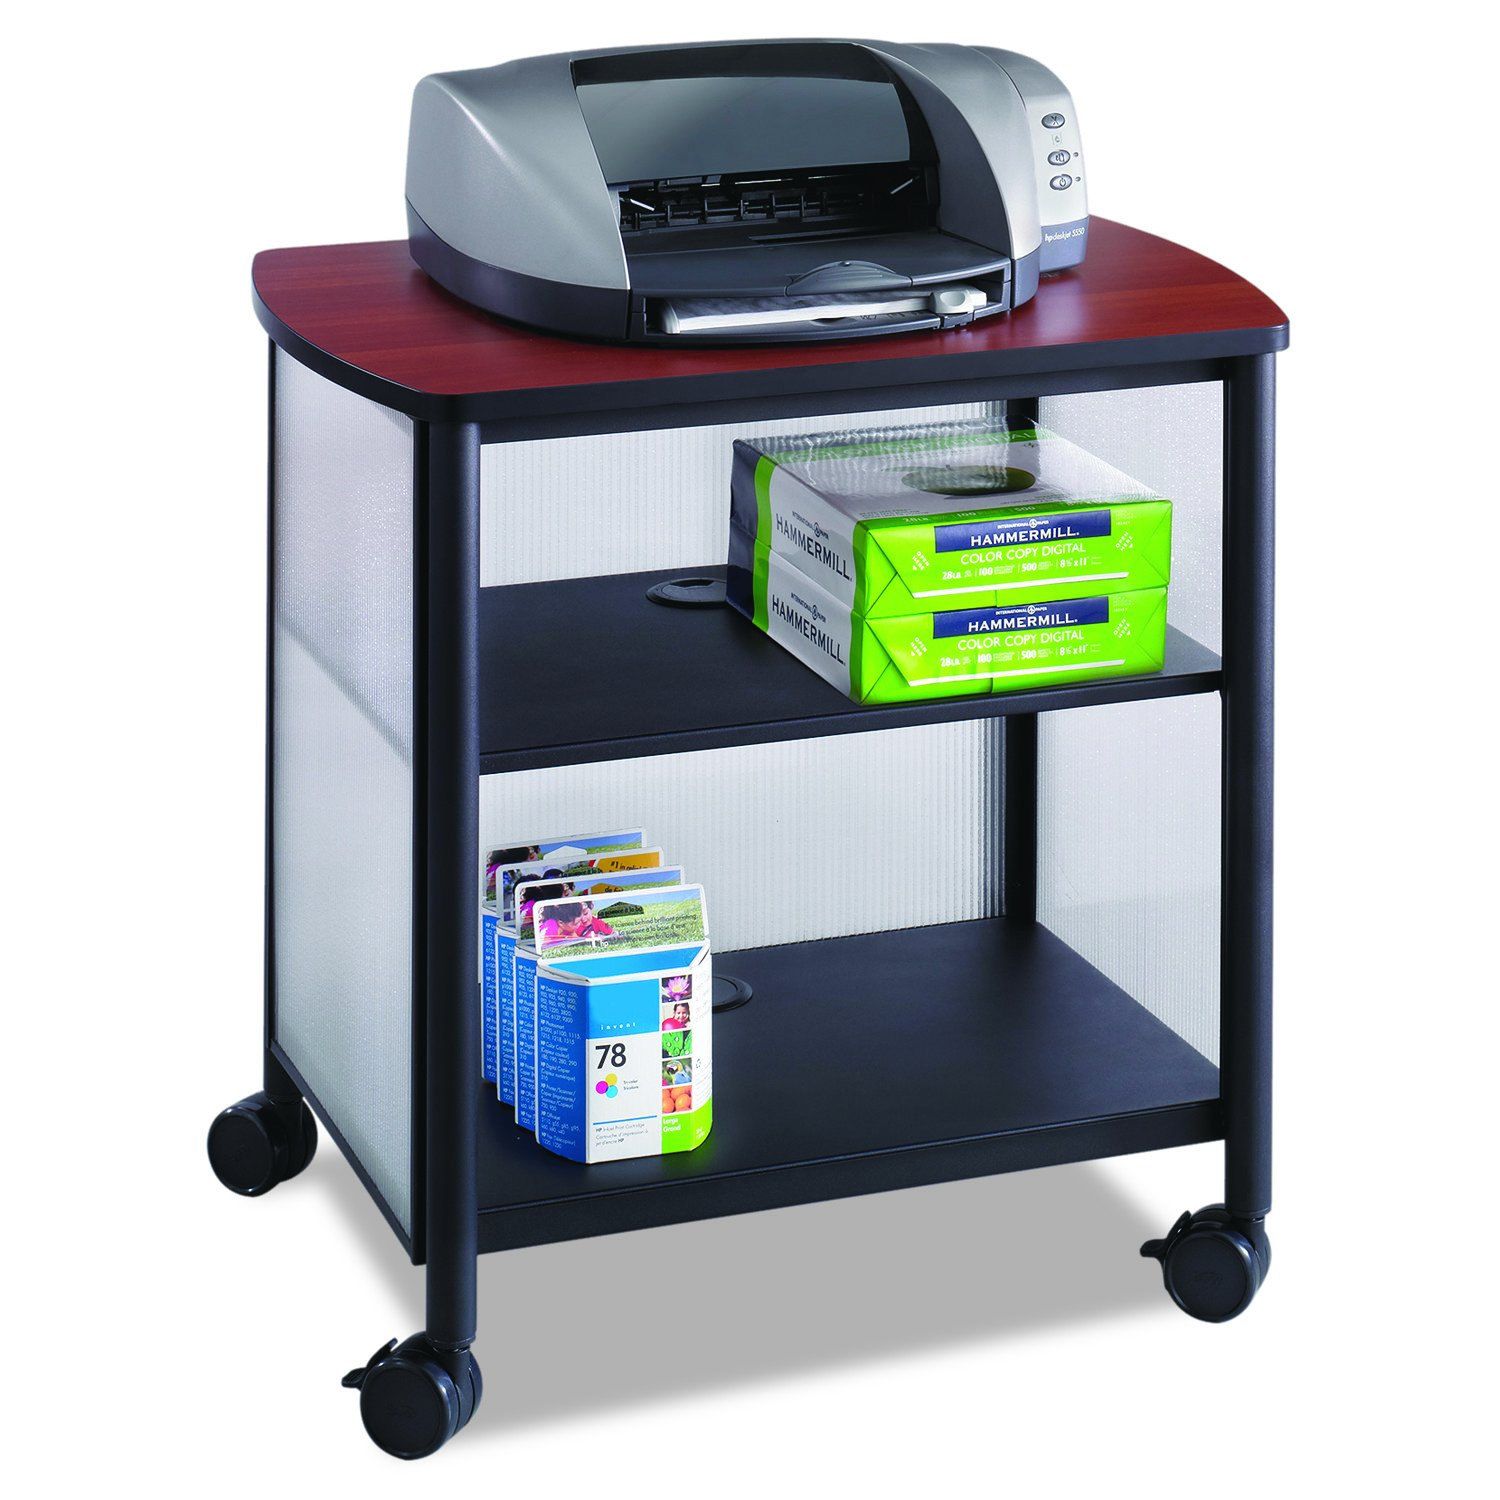 Safco Products Impromptu Mobile Print Stand 1857BL, Cherry Top/Black Frame, 200 lbs. Capacity, Contemporary Design, Swivel Wheels by Safco Products